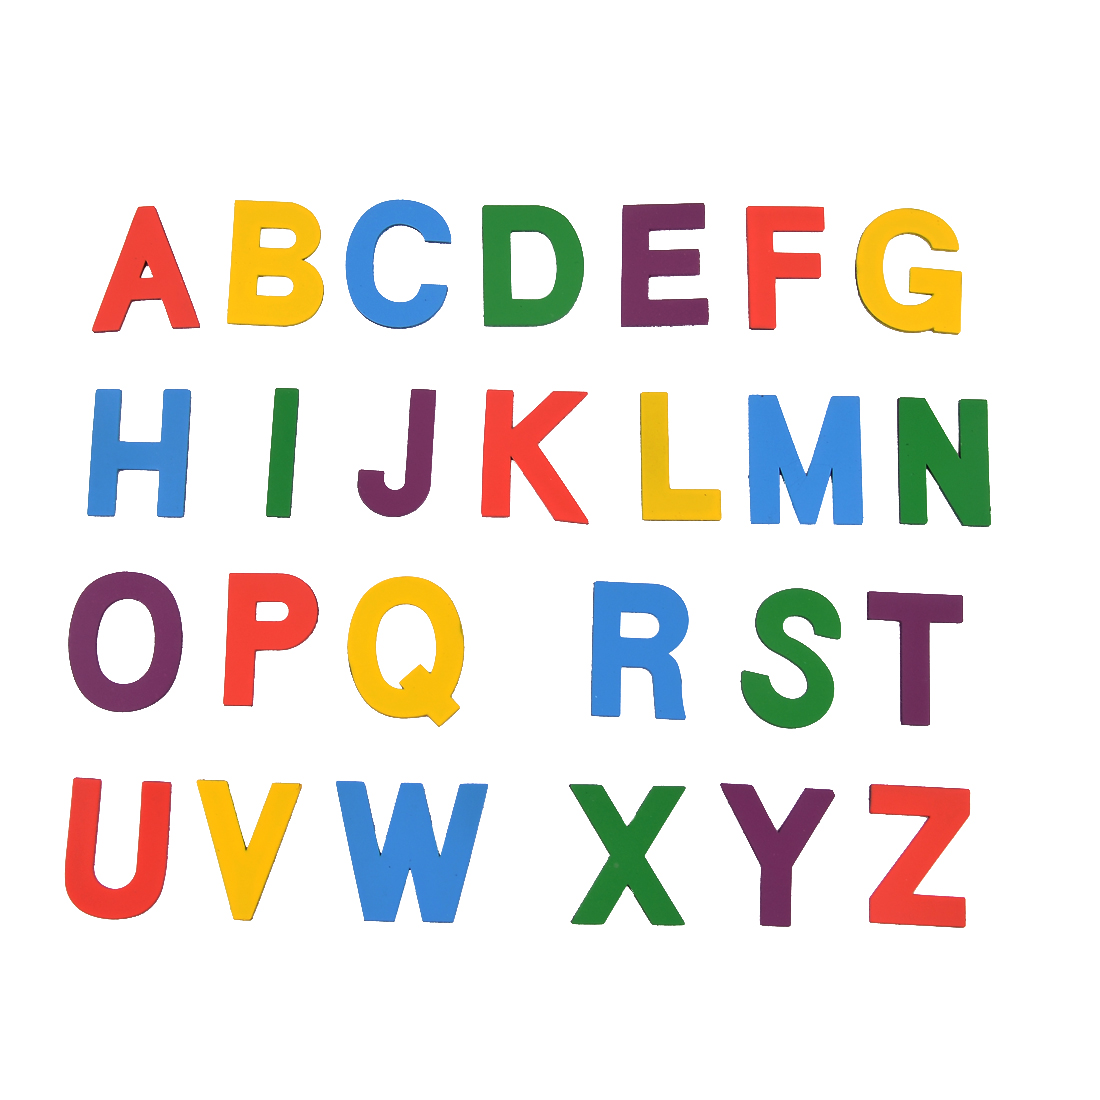 English Letters Sheet Shaped Teaching Planning Tool Magnets Colorful 26 in 1